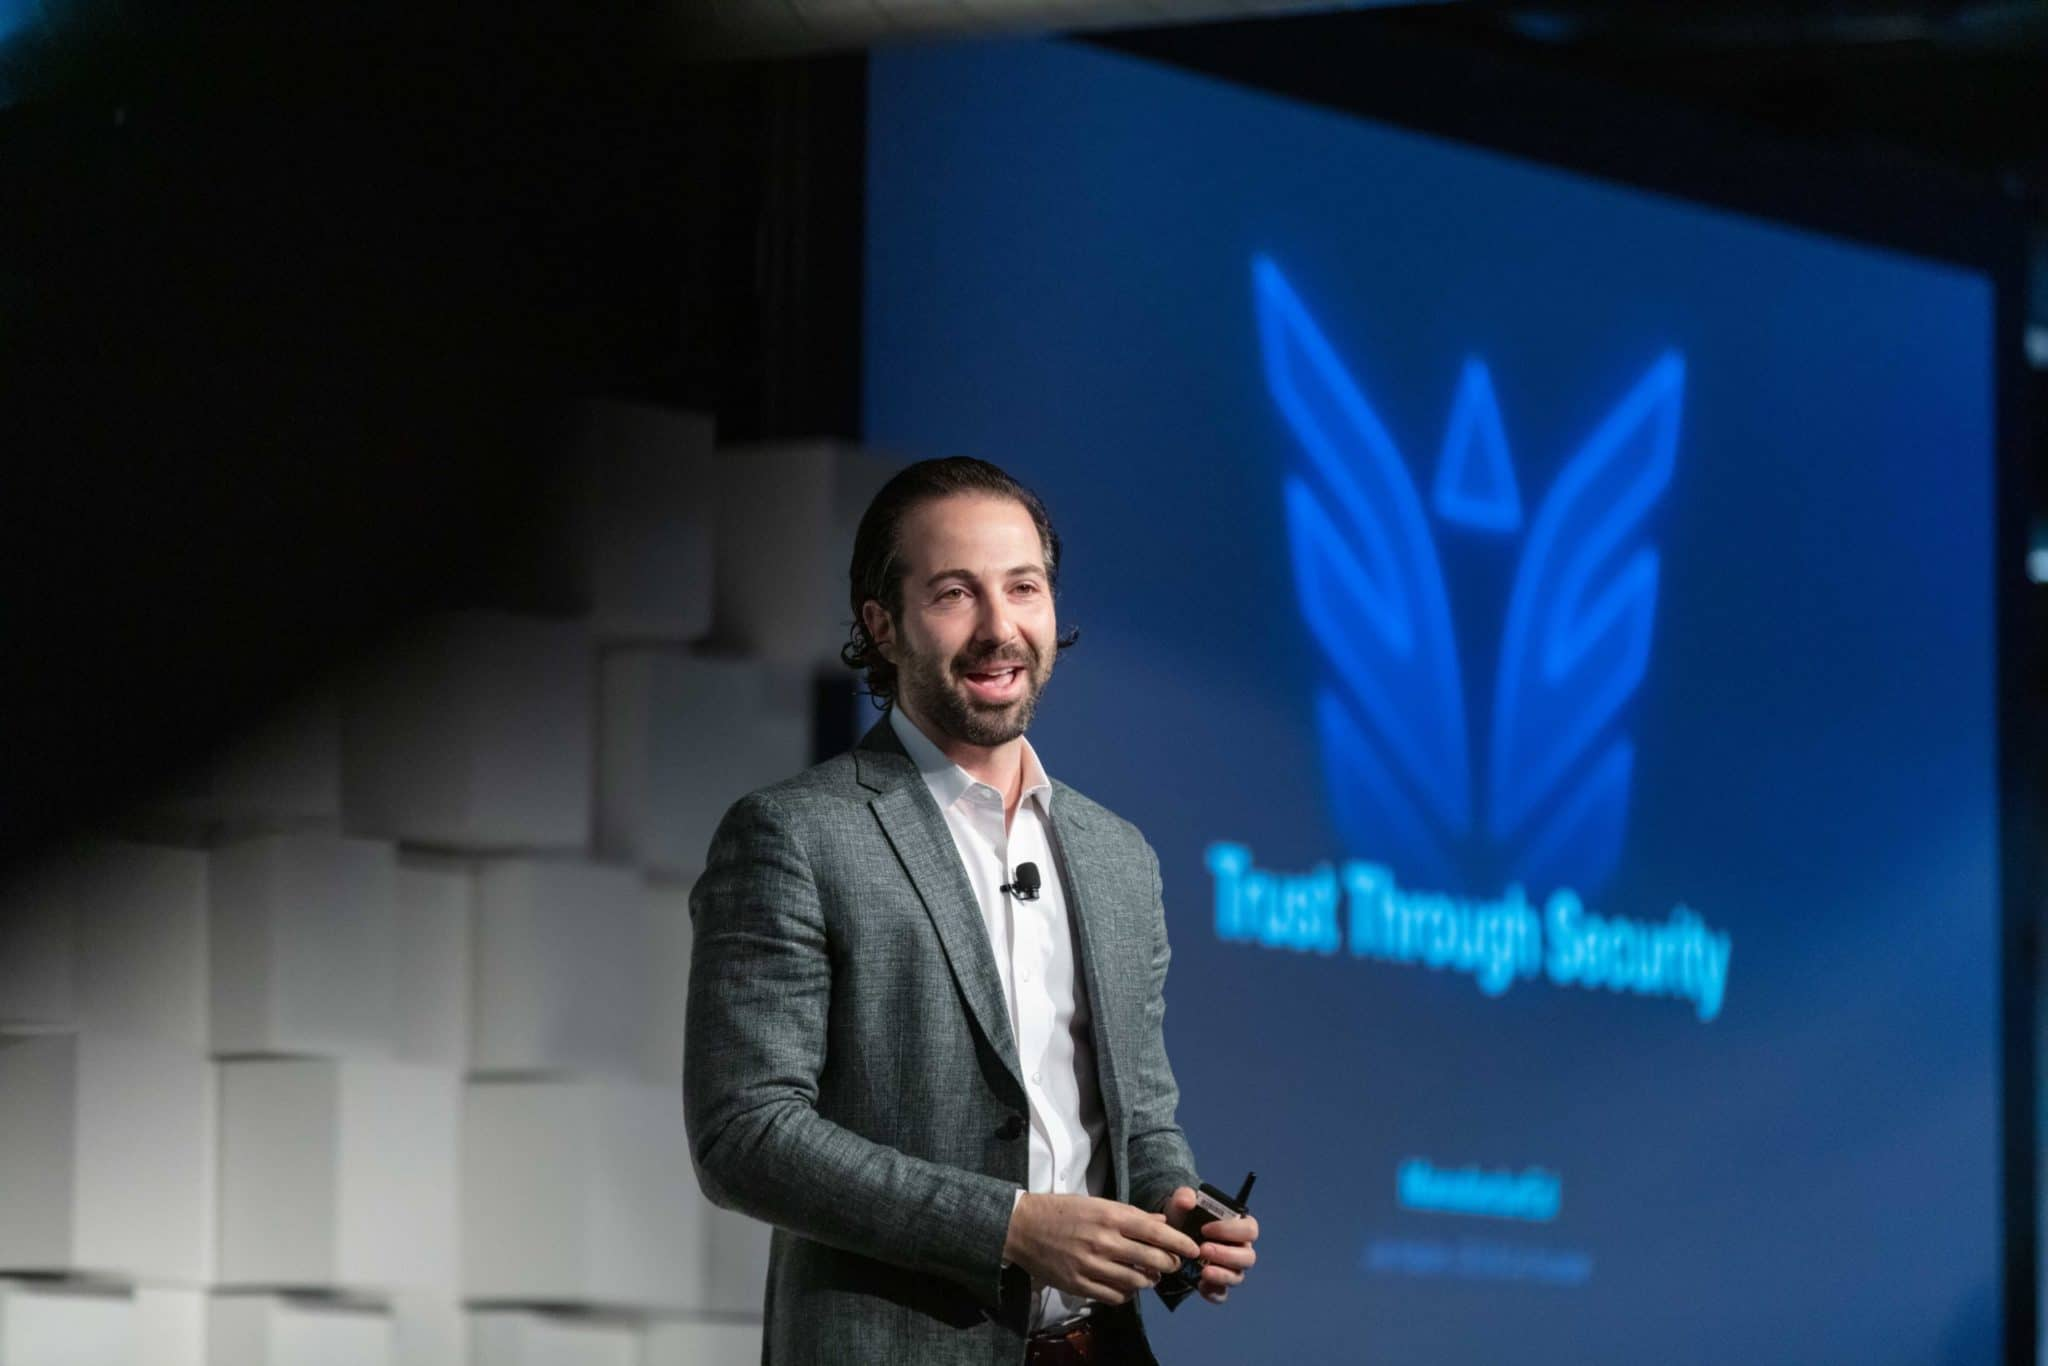 Jay Kaplan, Ethical hackers provide crowdsourced cybersecurity at Synack